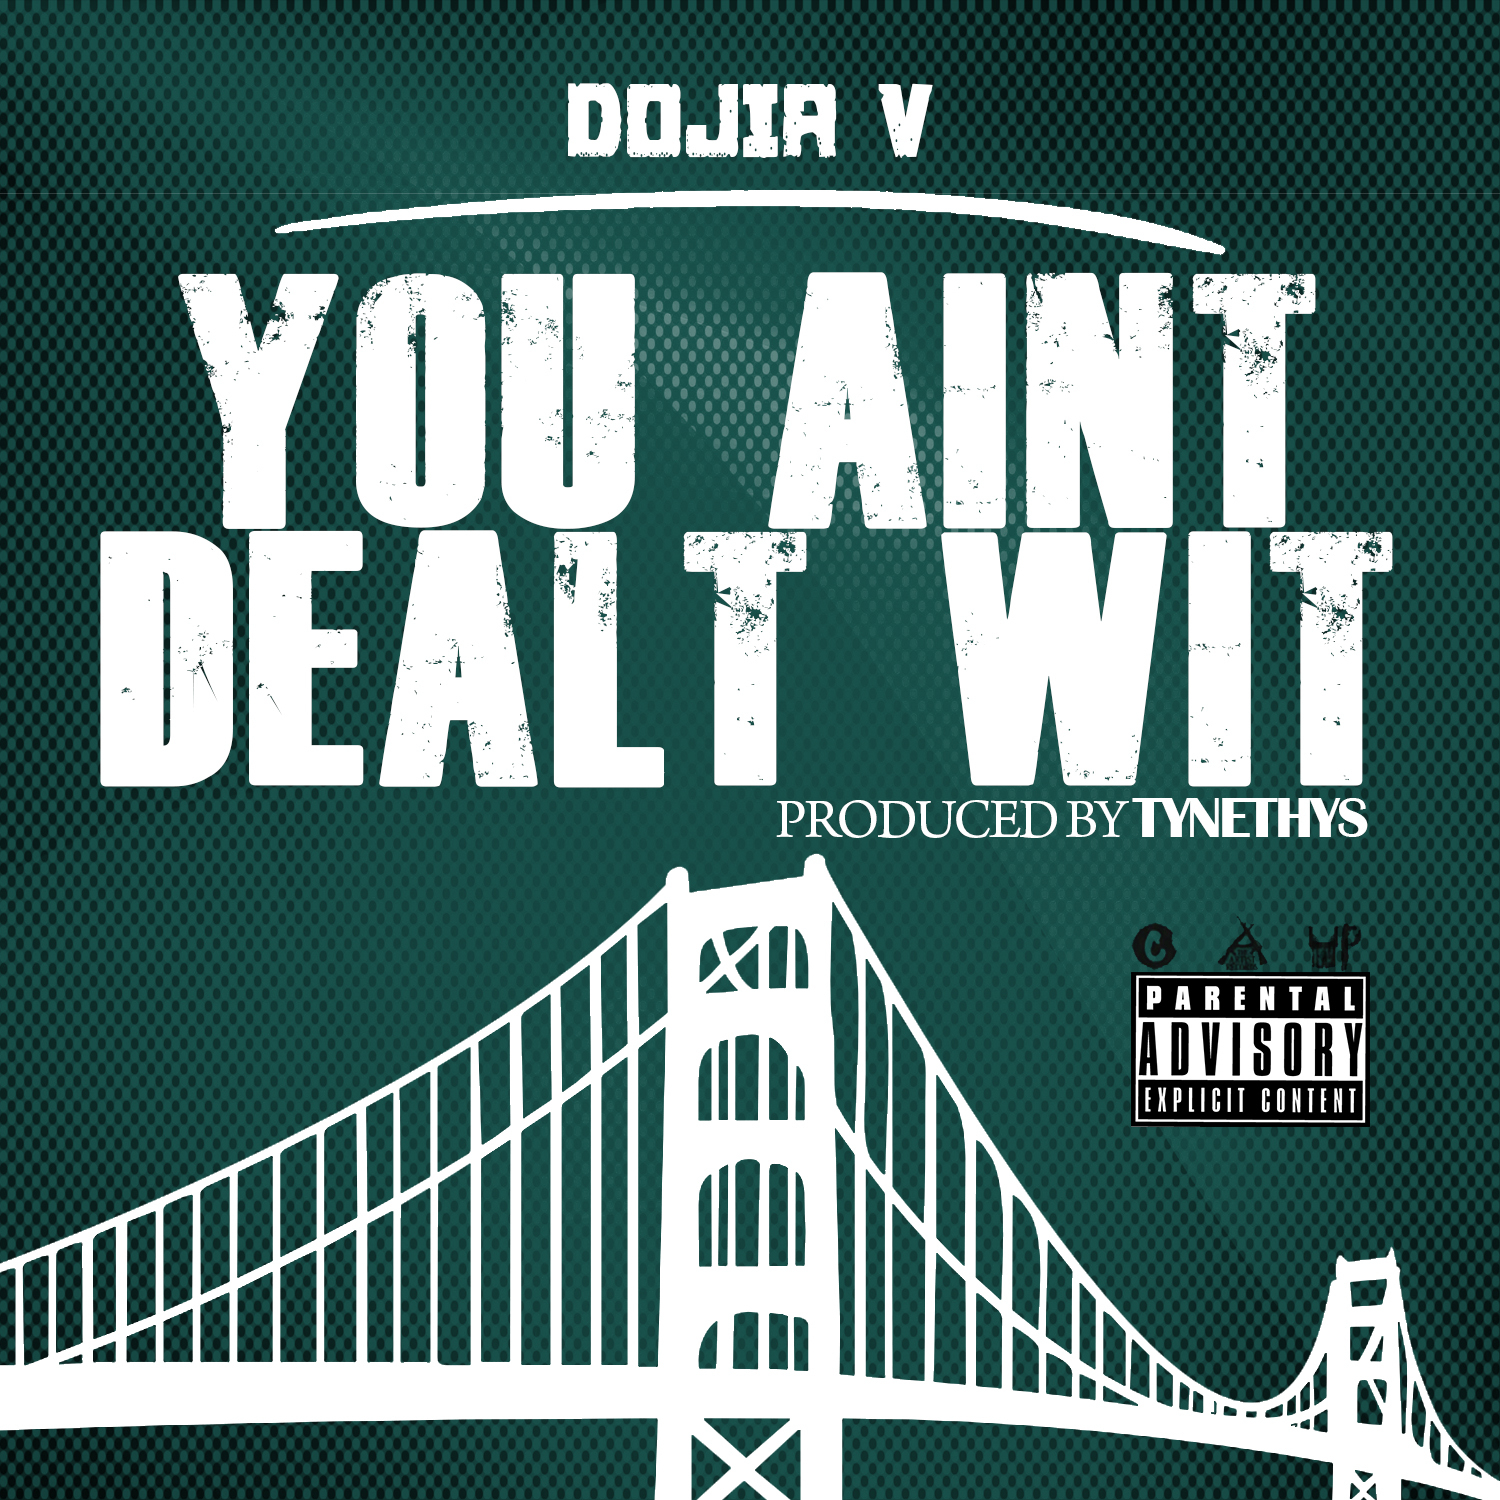 Dojia V - You Aint Dealt Wit (Produced by Tynethys) [Thizzler.com Exclusive]